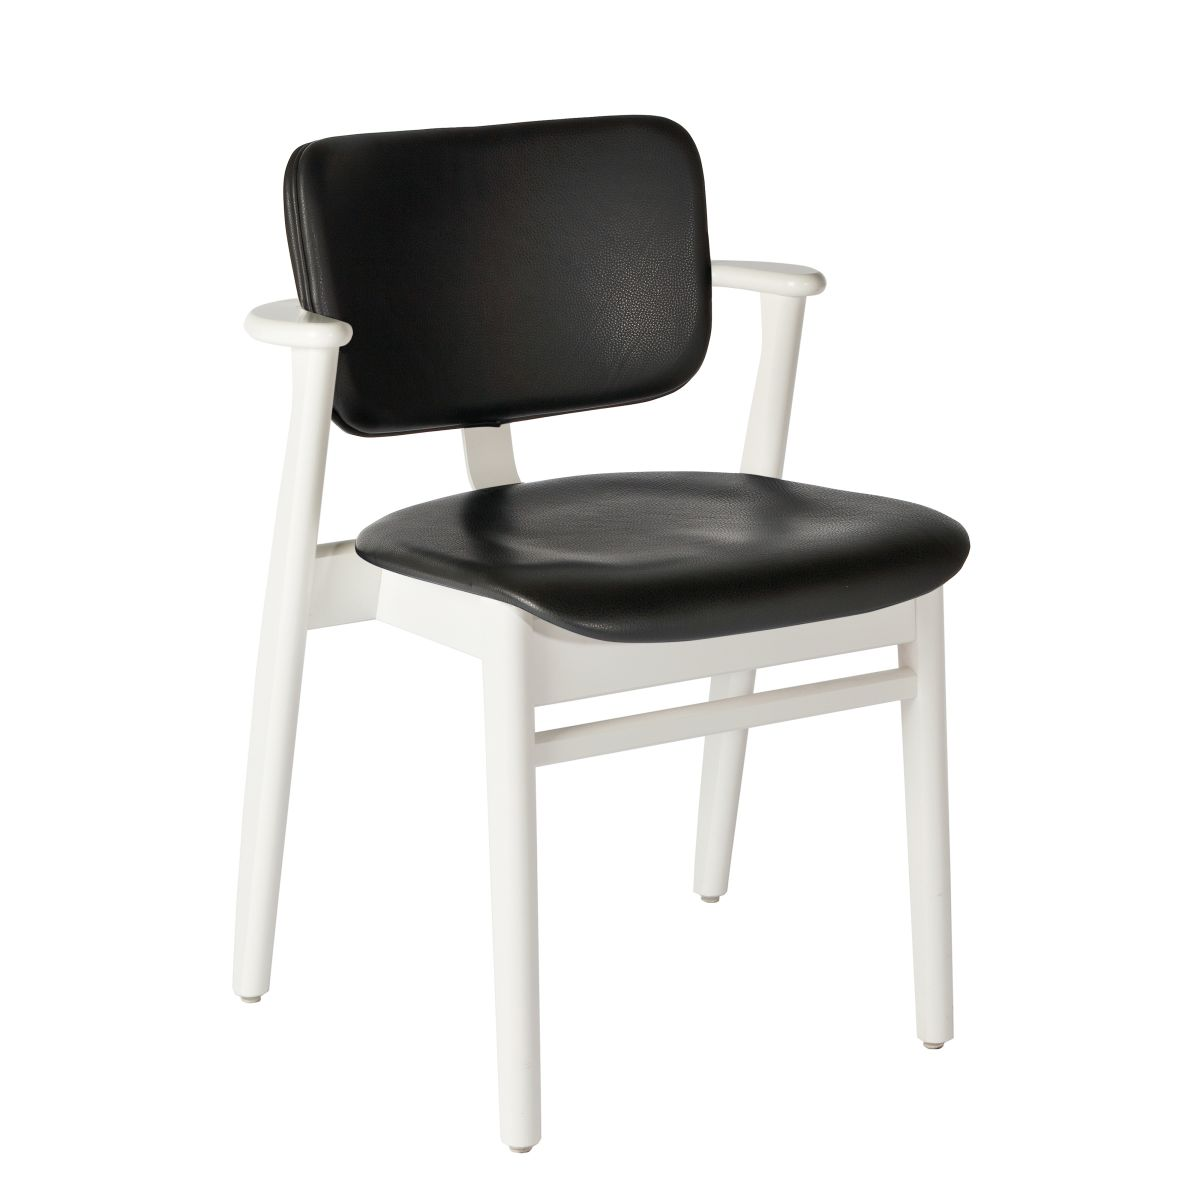 Domus Chair legs white laquered birch_seat back leather black